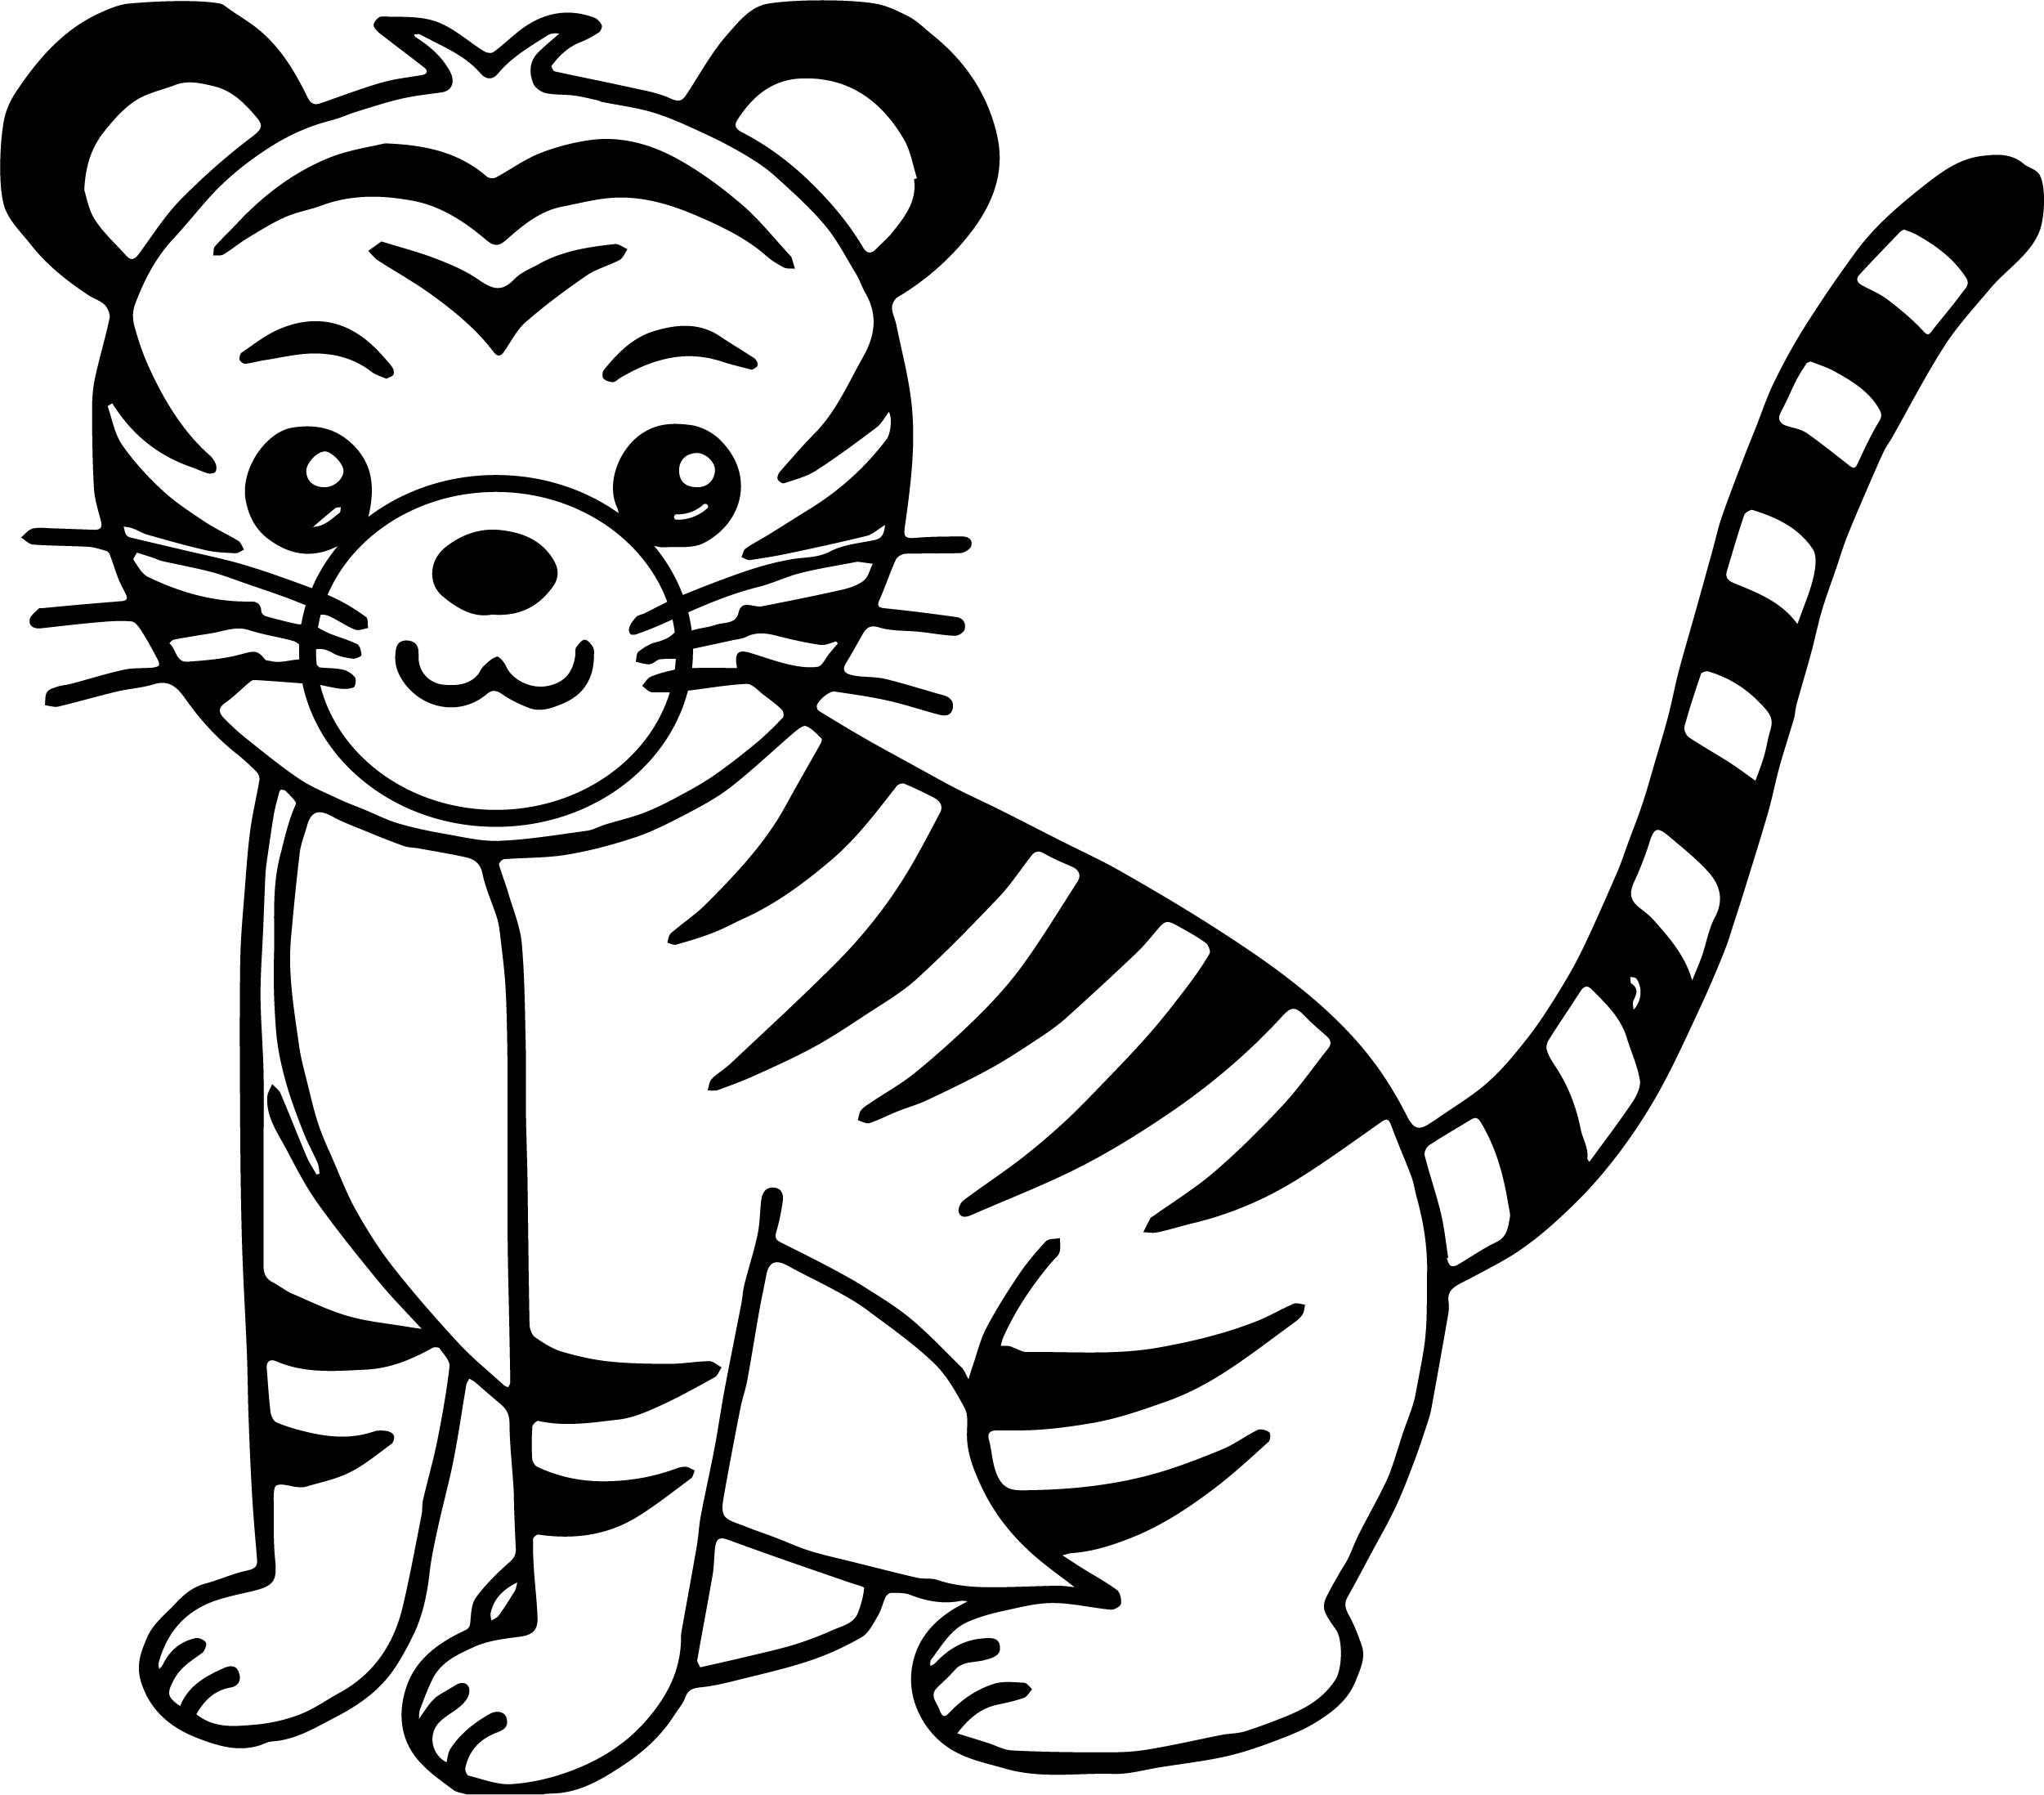 tiger colouring pictures tiger coloring pages free download on clipartmag pictures colouring tiger